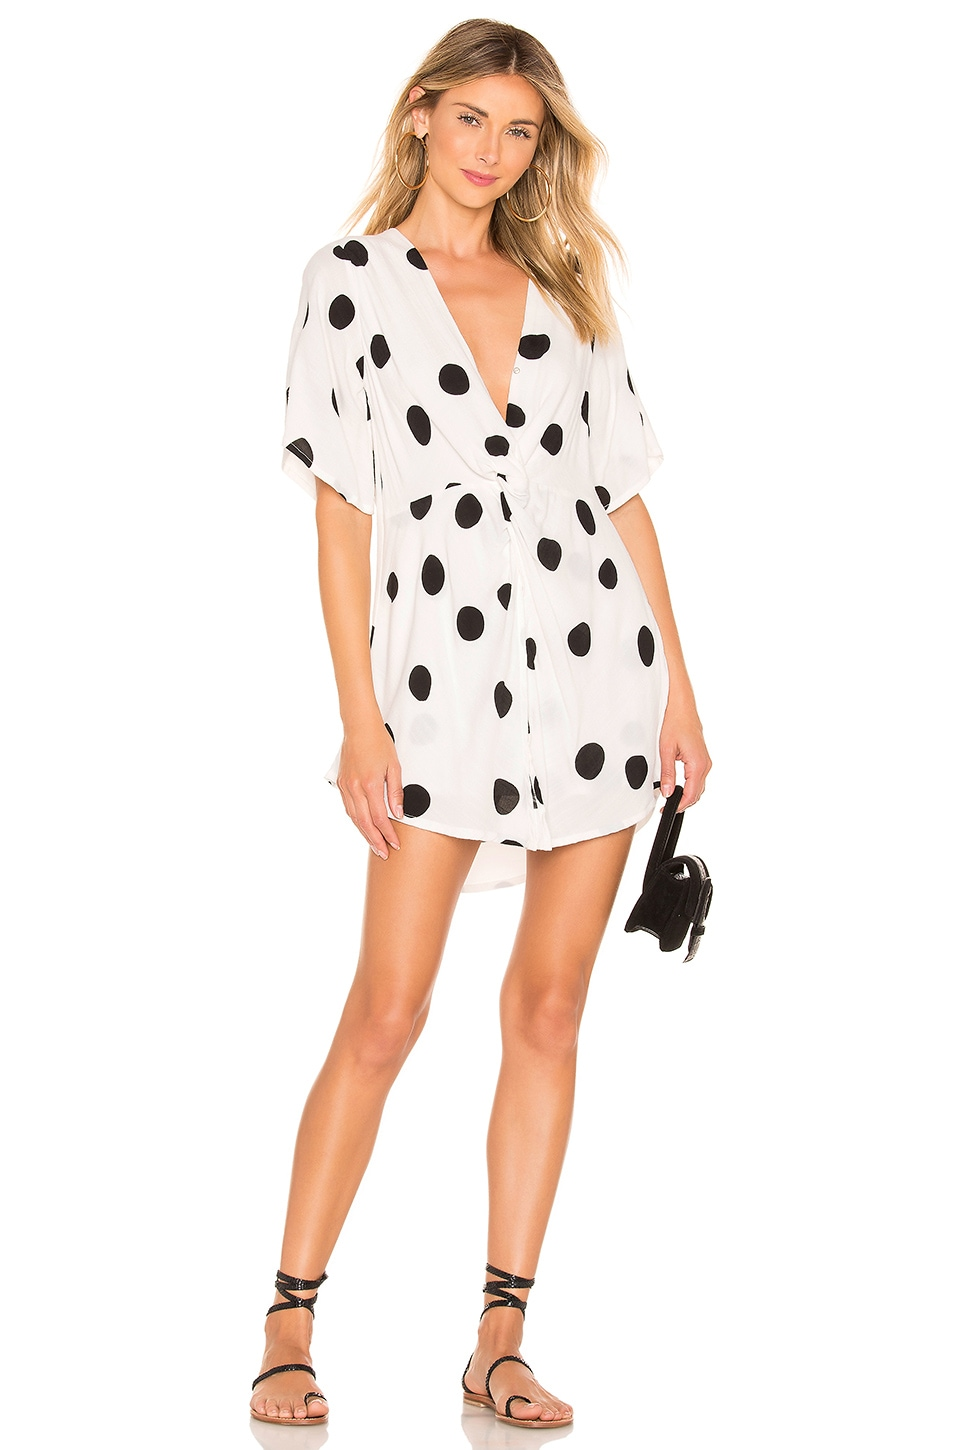 ZULU & ZEPHYR Float Shirt Dress in Black & White